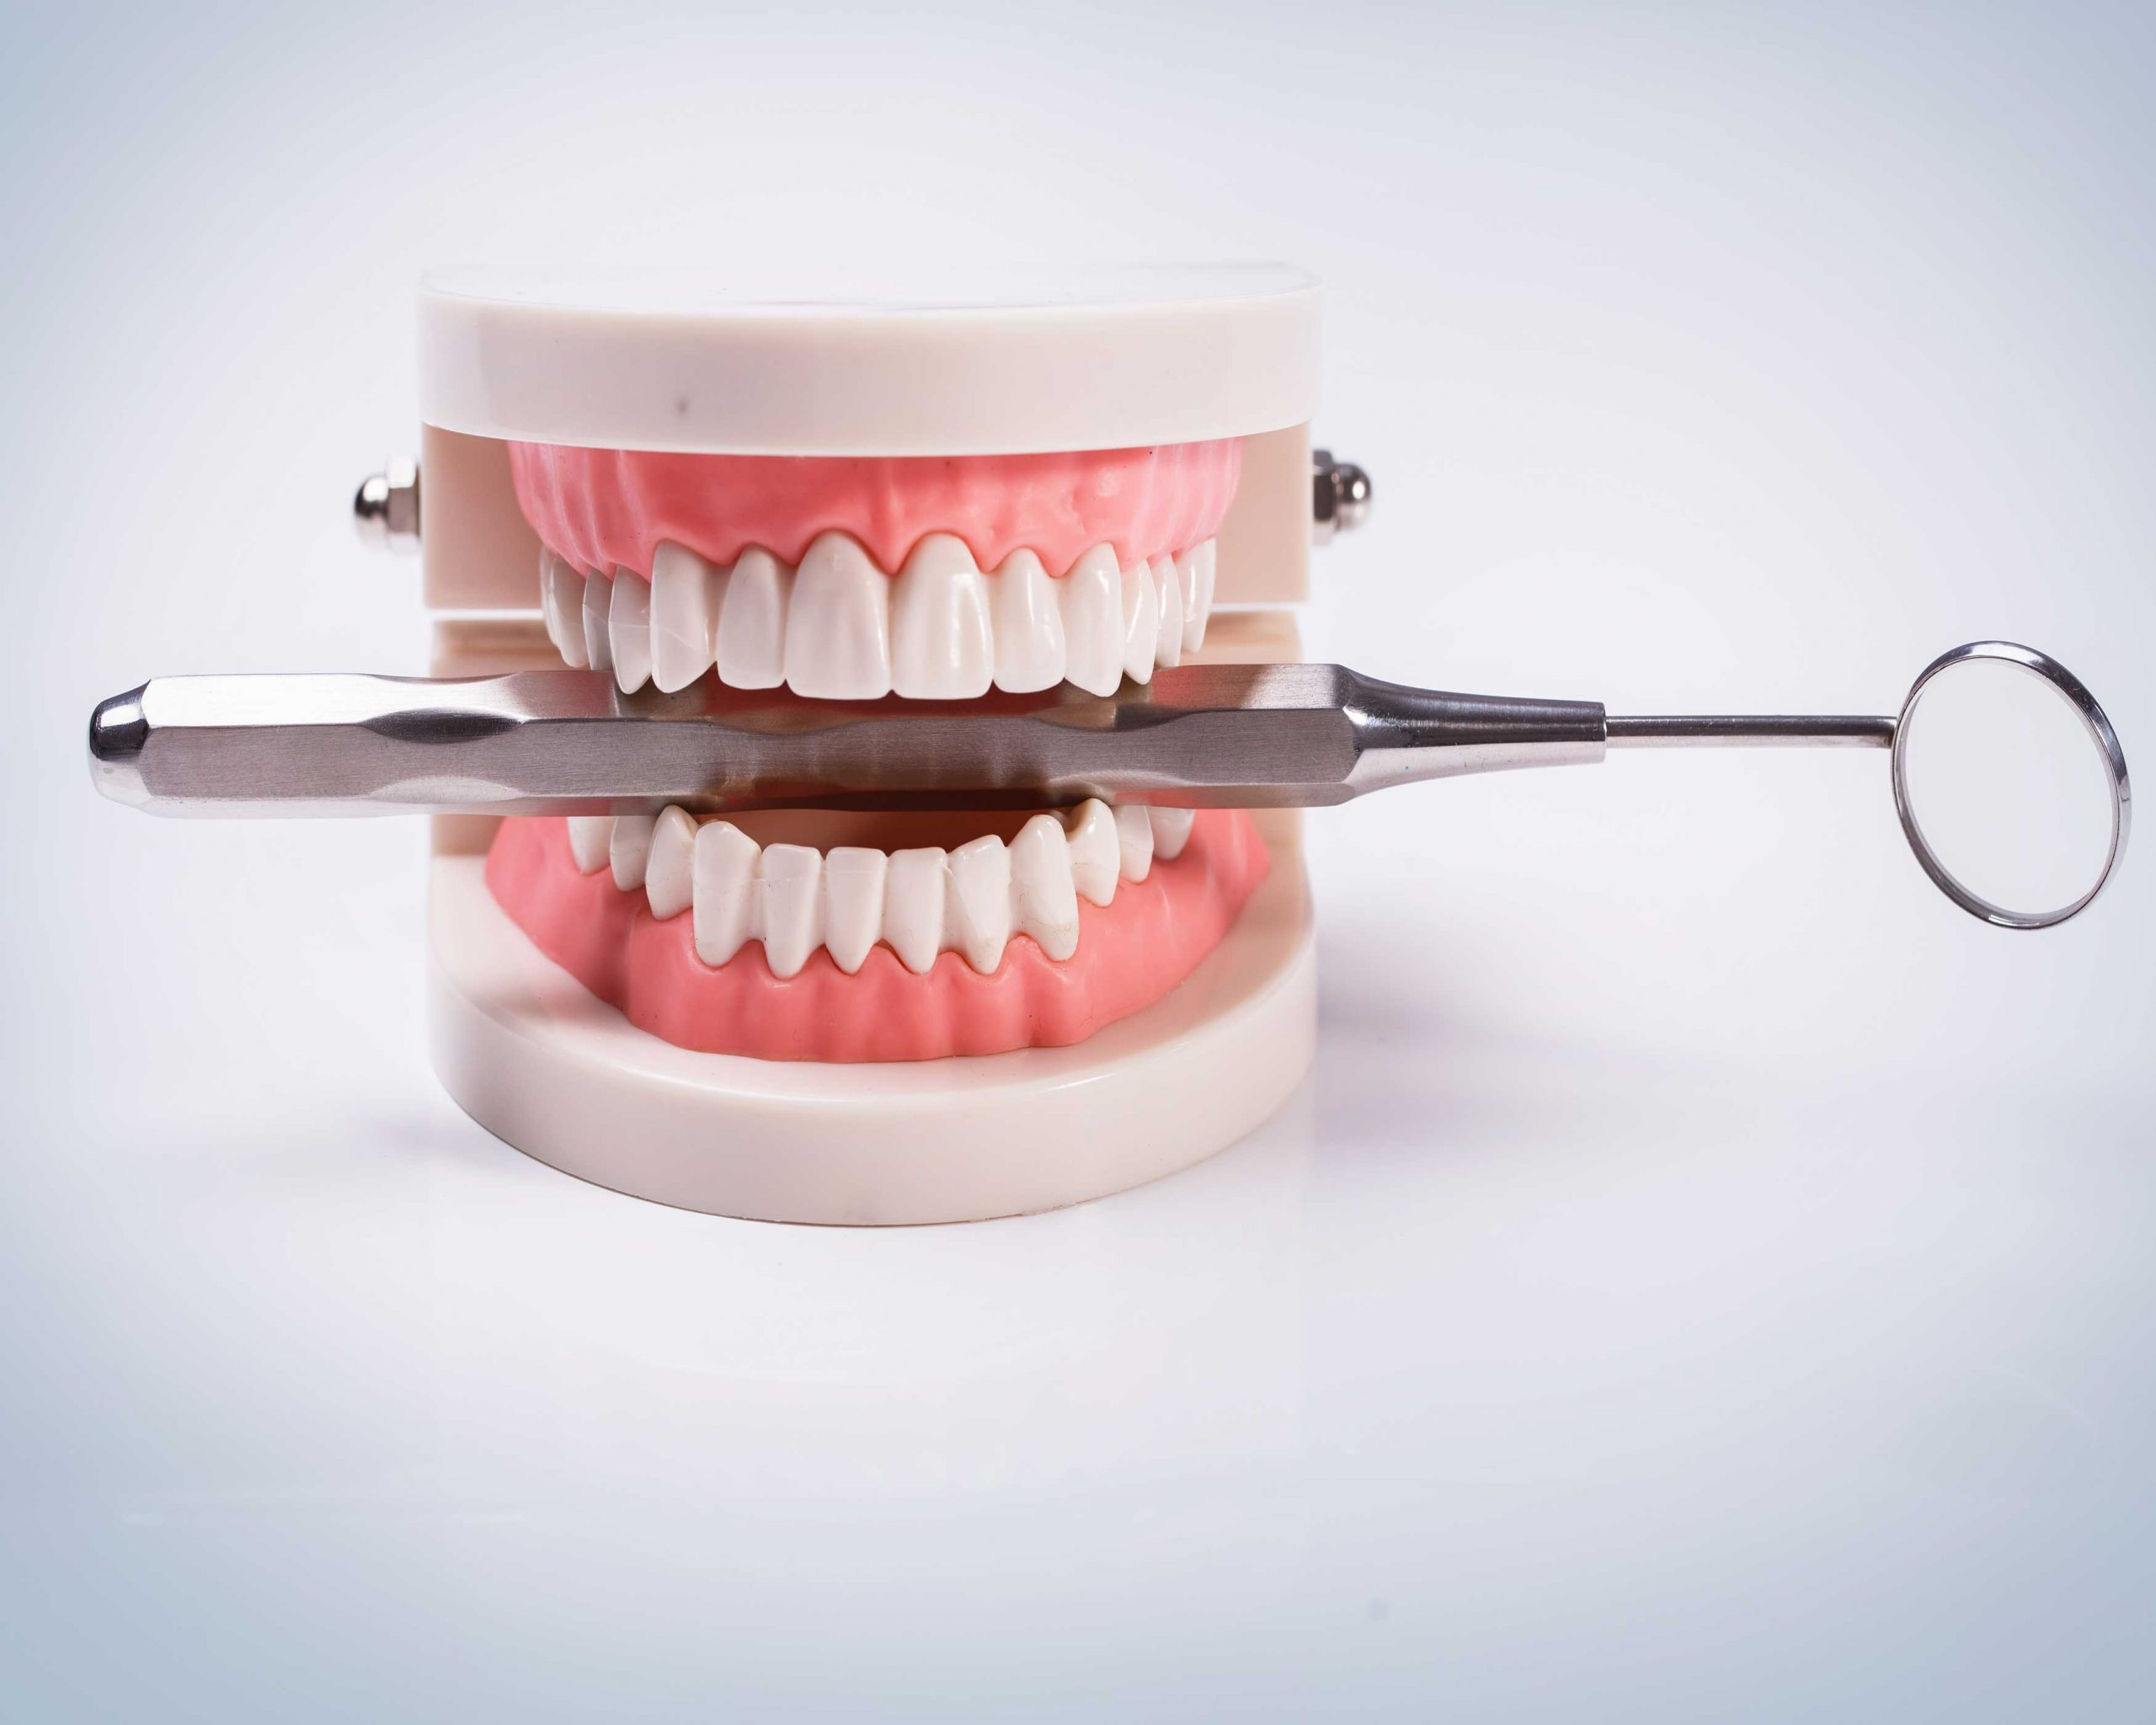 Top 5 questions patients ask about denture